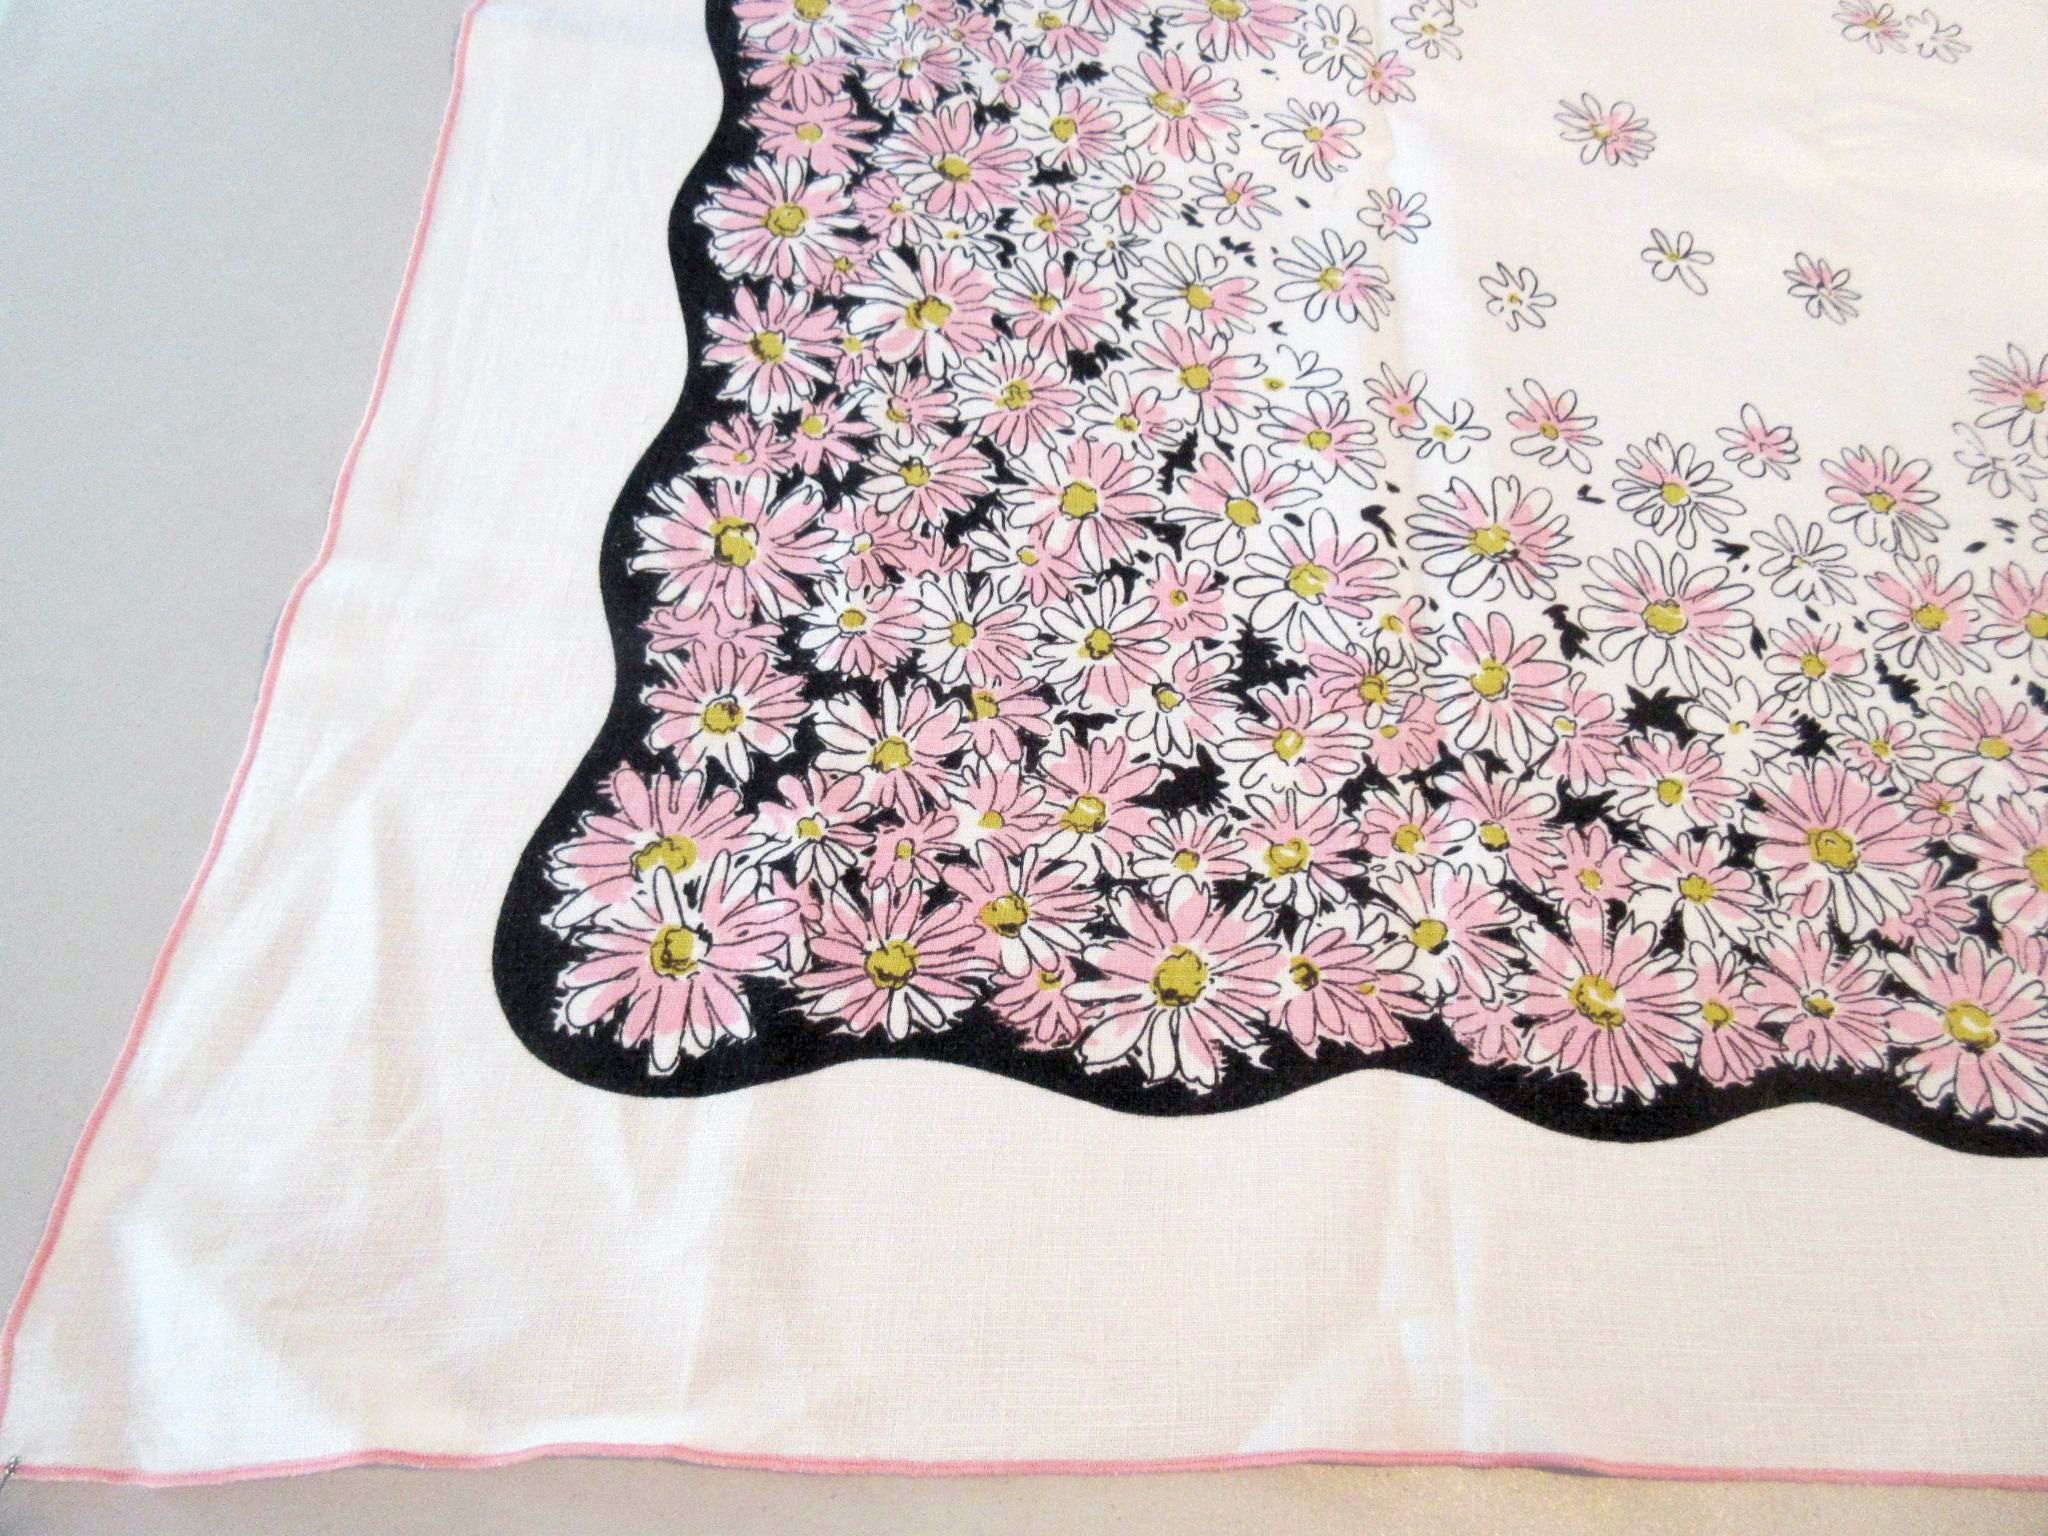 Mod Pink Daisies on Black Linen Floral Vintage Printed Tablecloth (49 X 49)